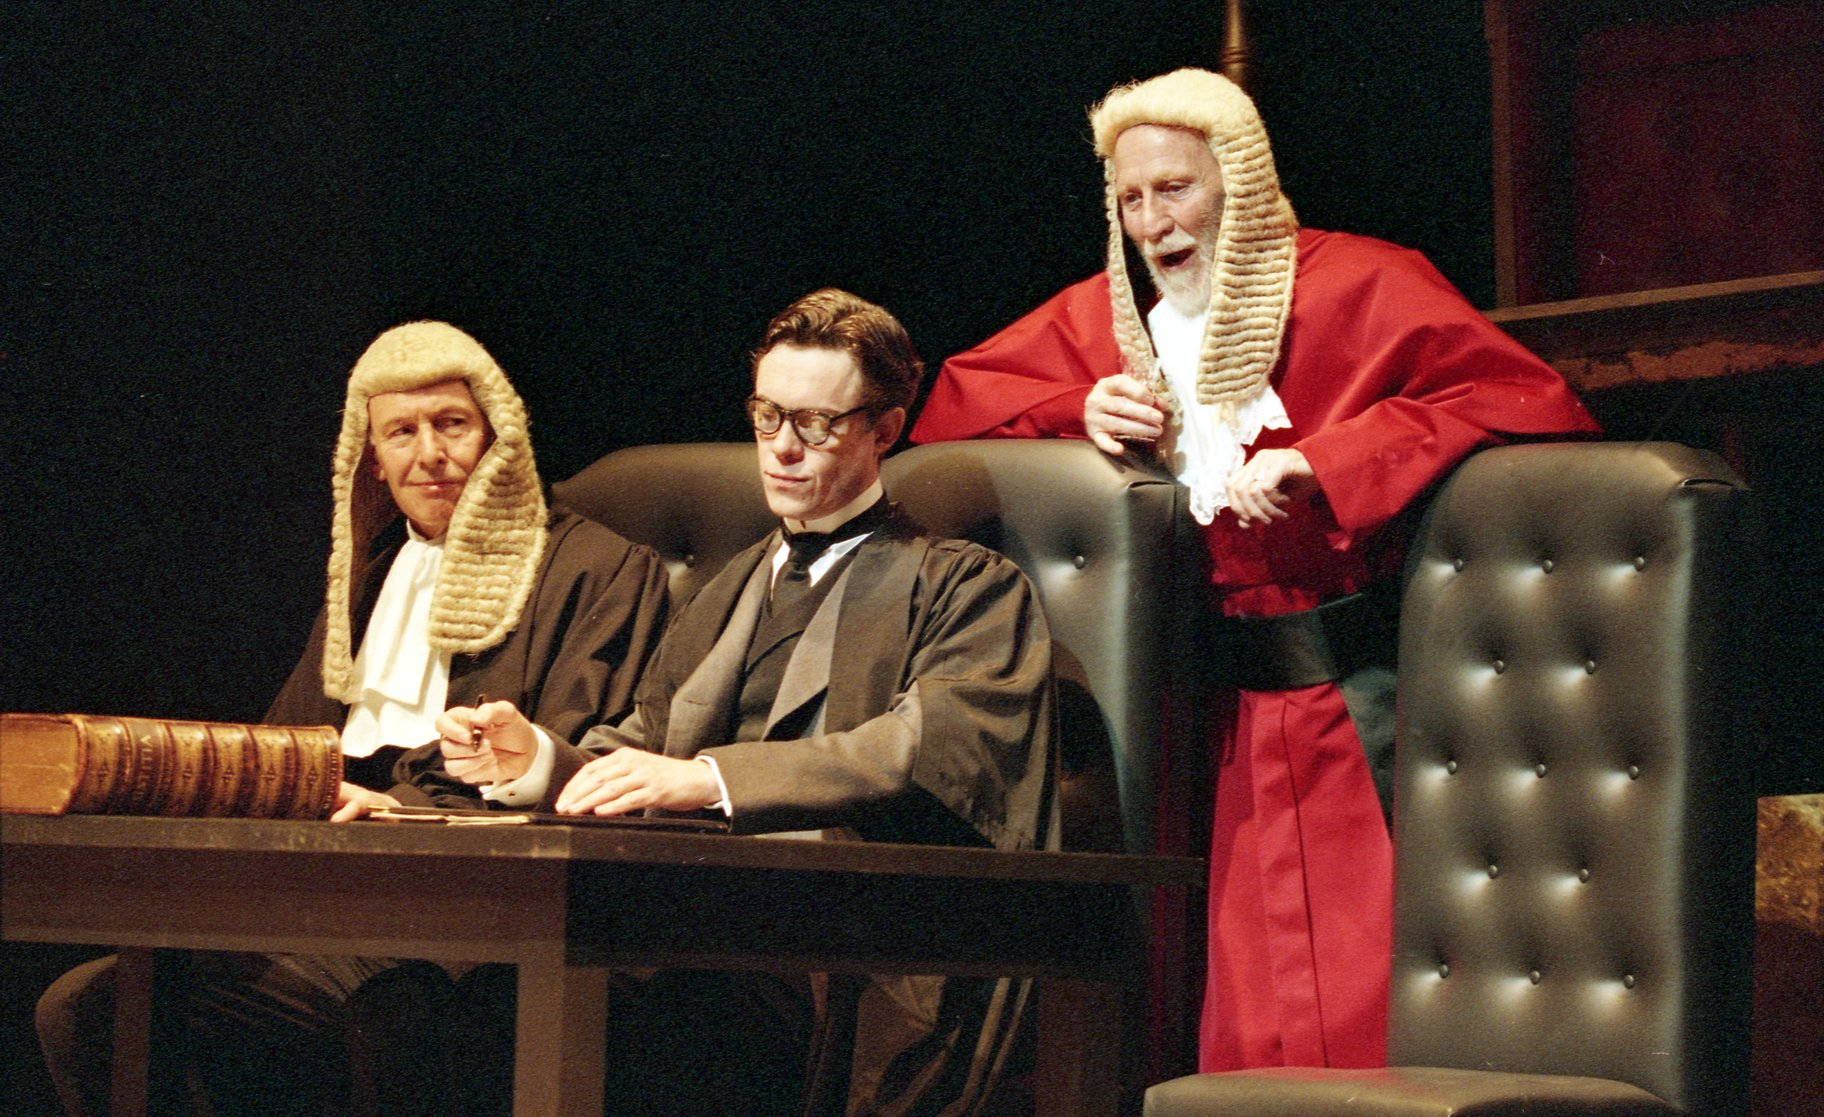 Two justices in wigs and a man in scholarly robes.